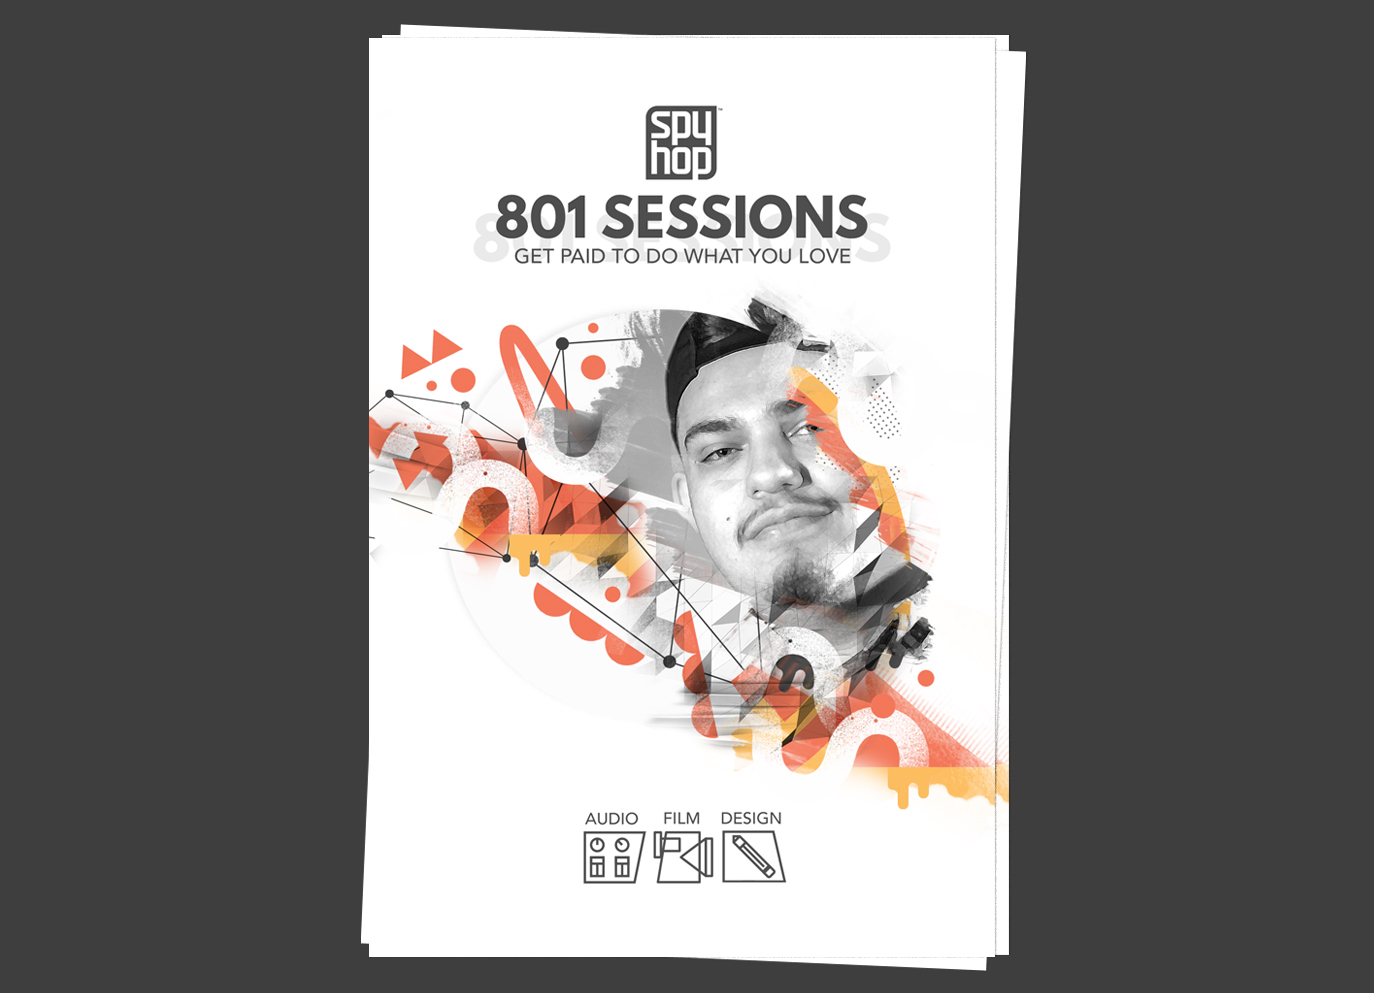 801 Sessions Digital Illustration